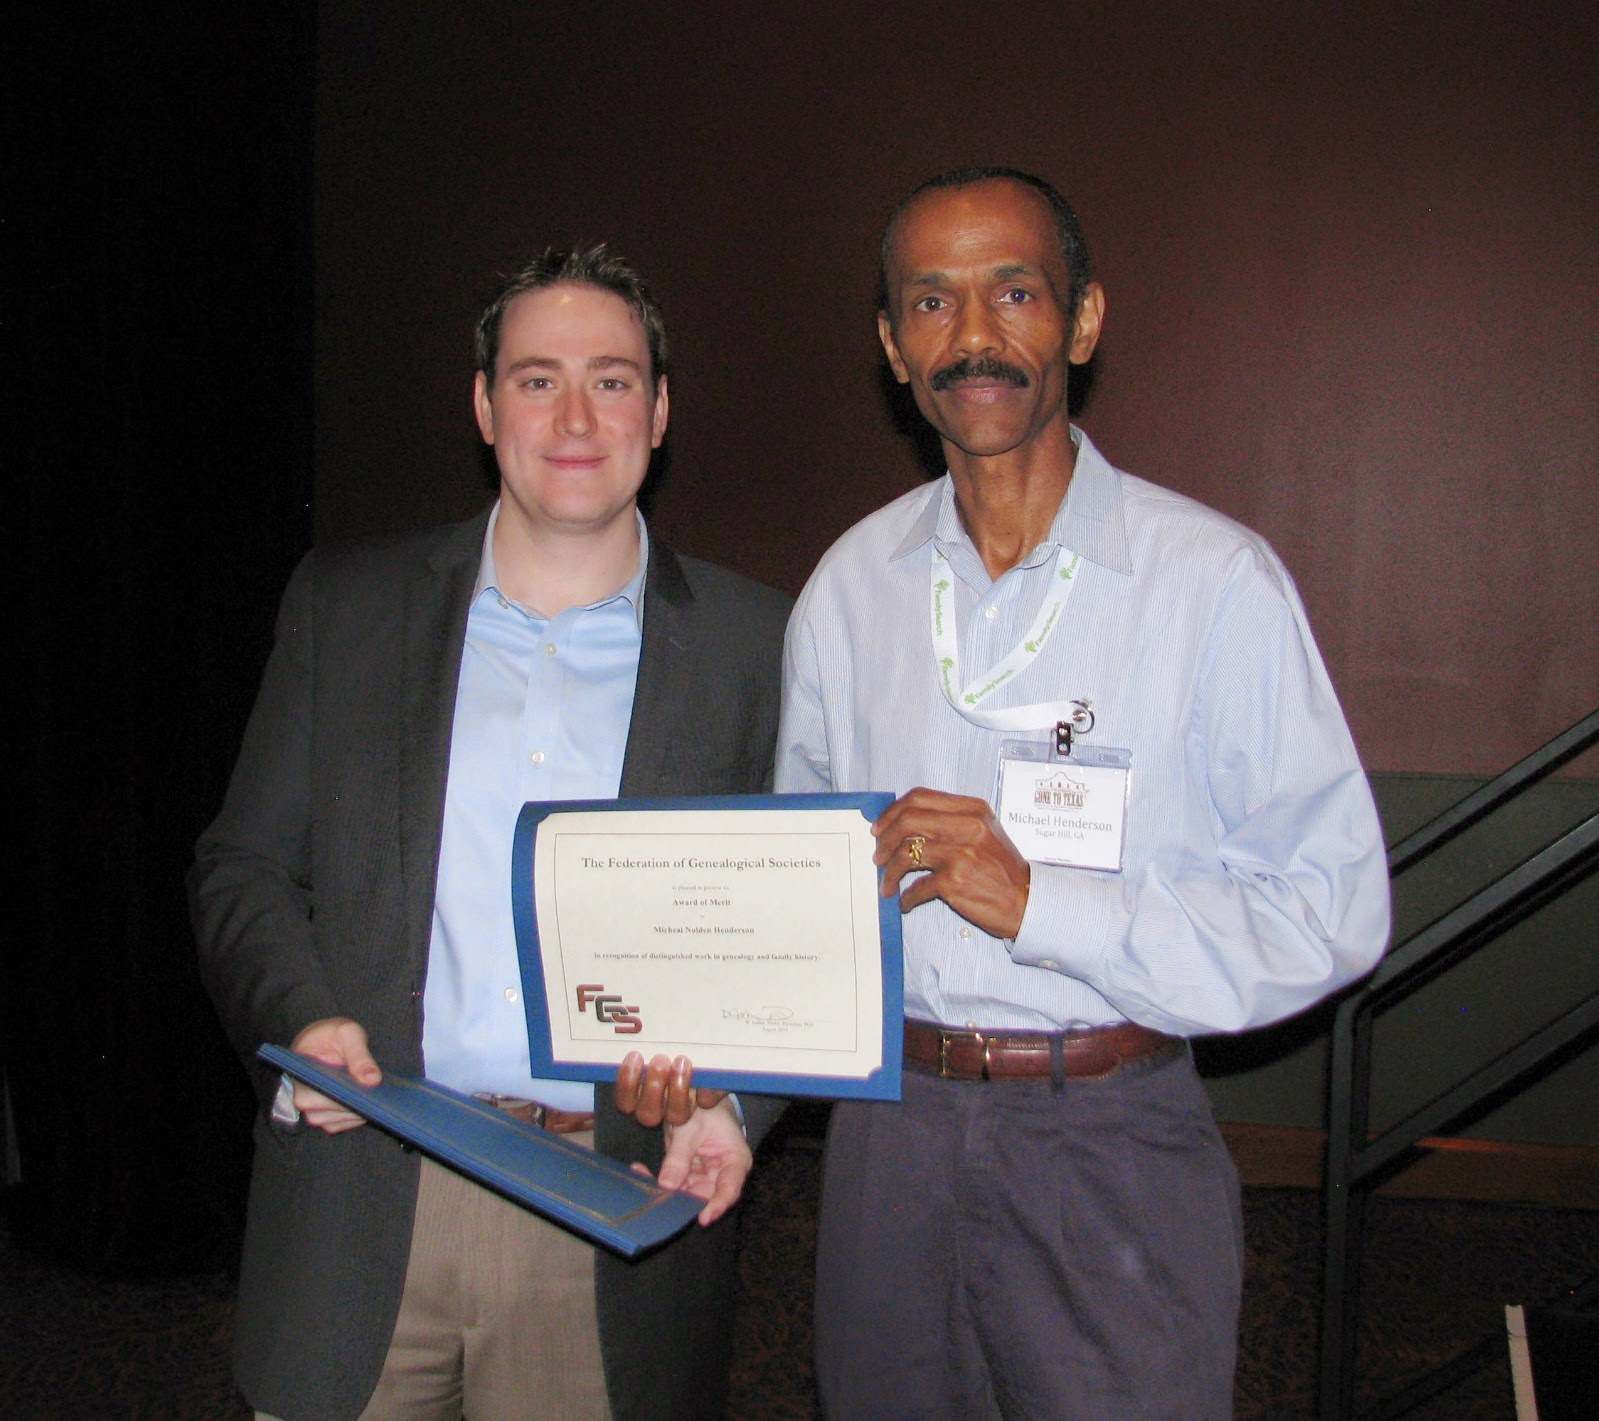 2014 Fgs Award Of Merit Presented To Michael Nolden Henderson Of